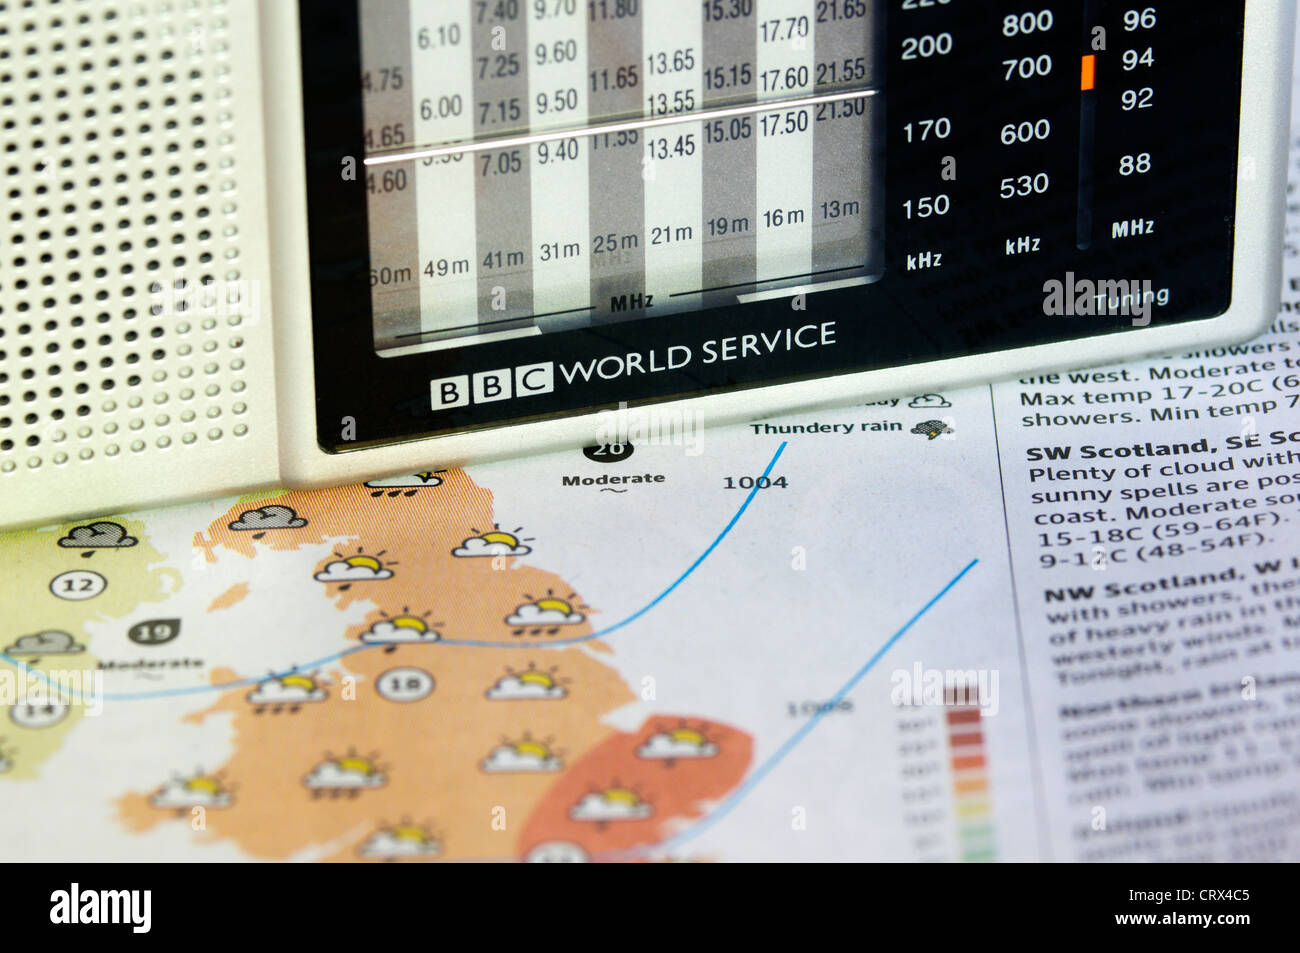 A BBC World Service radio resting on a newspaper weather map or chart. Stock Photo